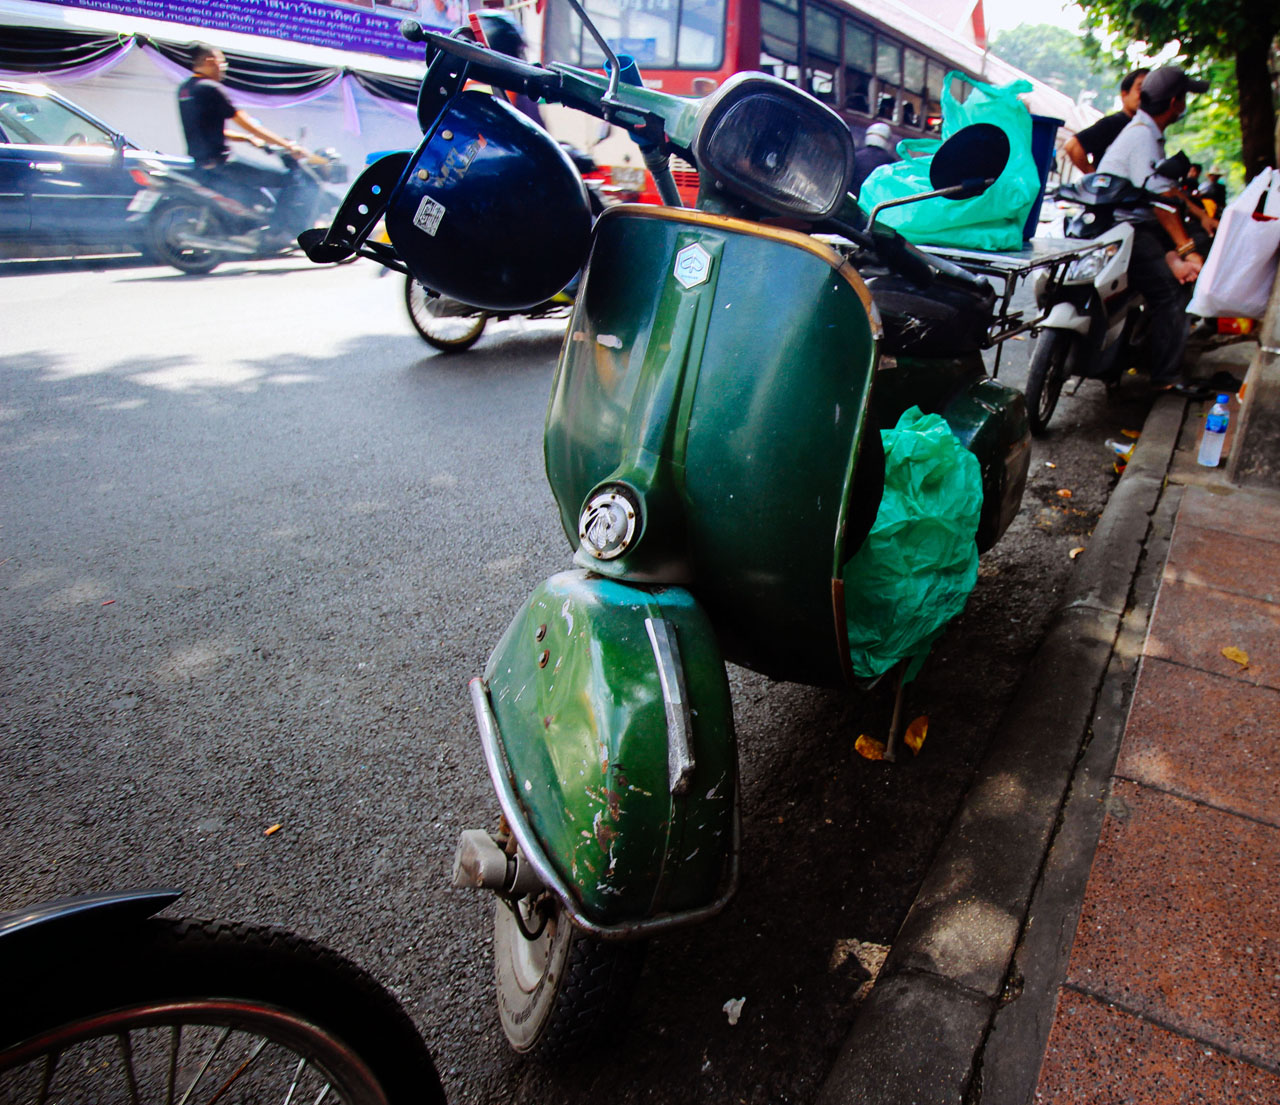 old green Vespa motorcycle